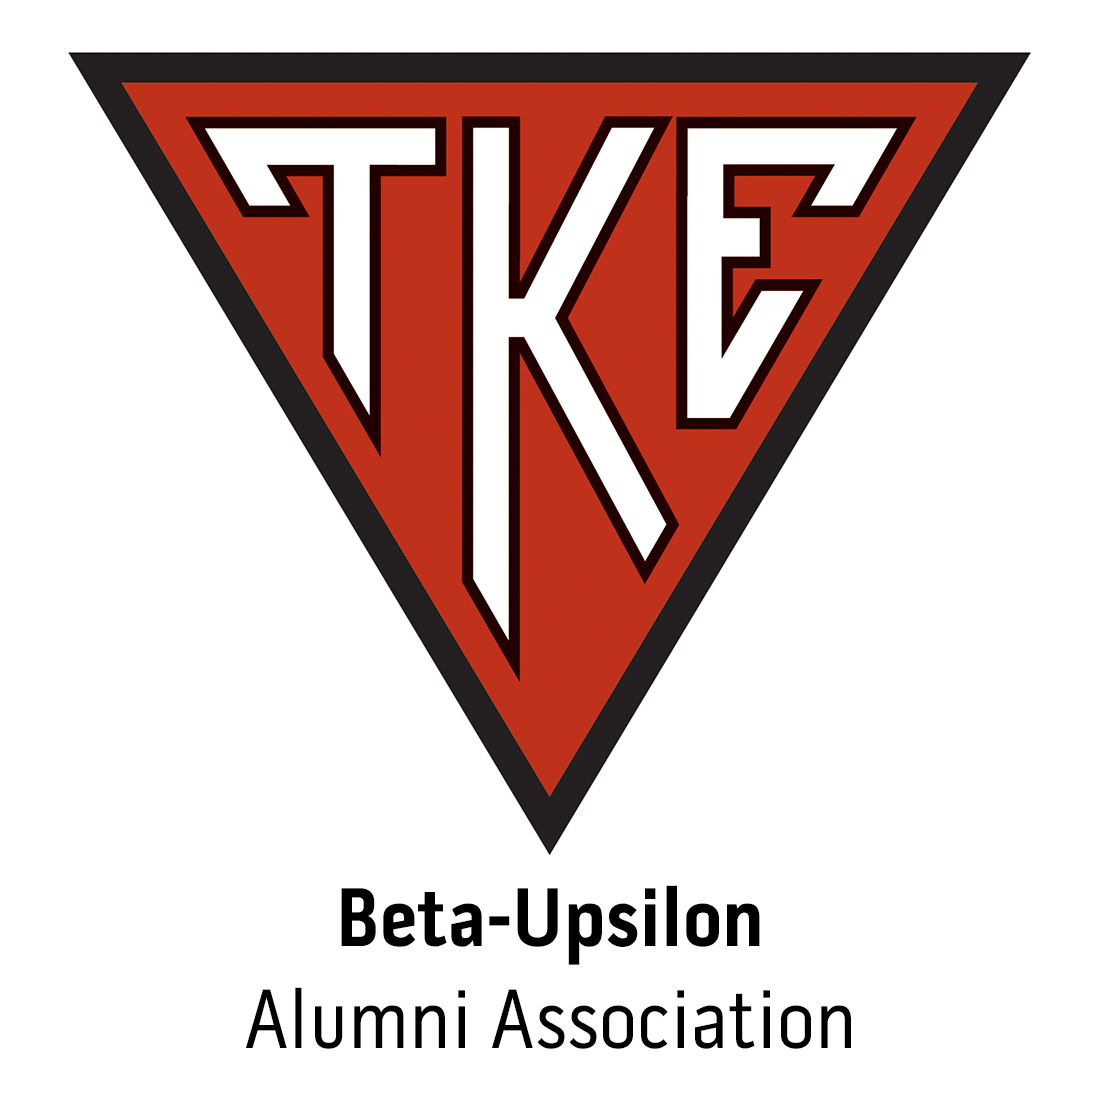 Beta-Upsilon Alumni Association for University of Maine-Orono